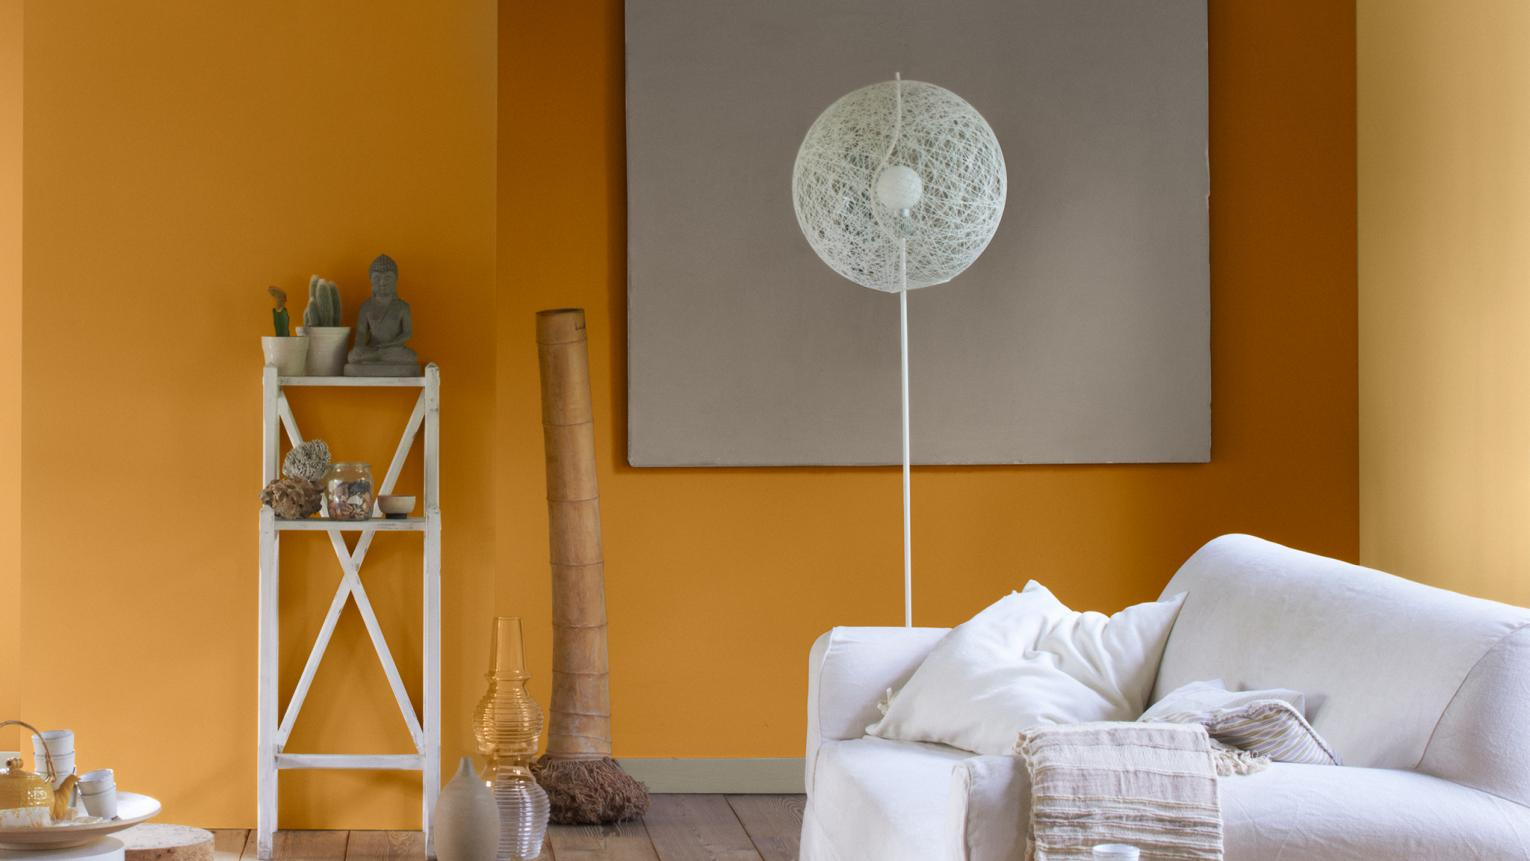 If it's warmth you're after, don't be afraid to use light terracotta or orange paint colours – a sunny hue can brighten and warm a dark, dingy space.